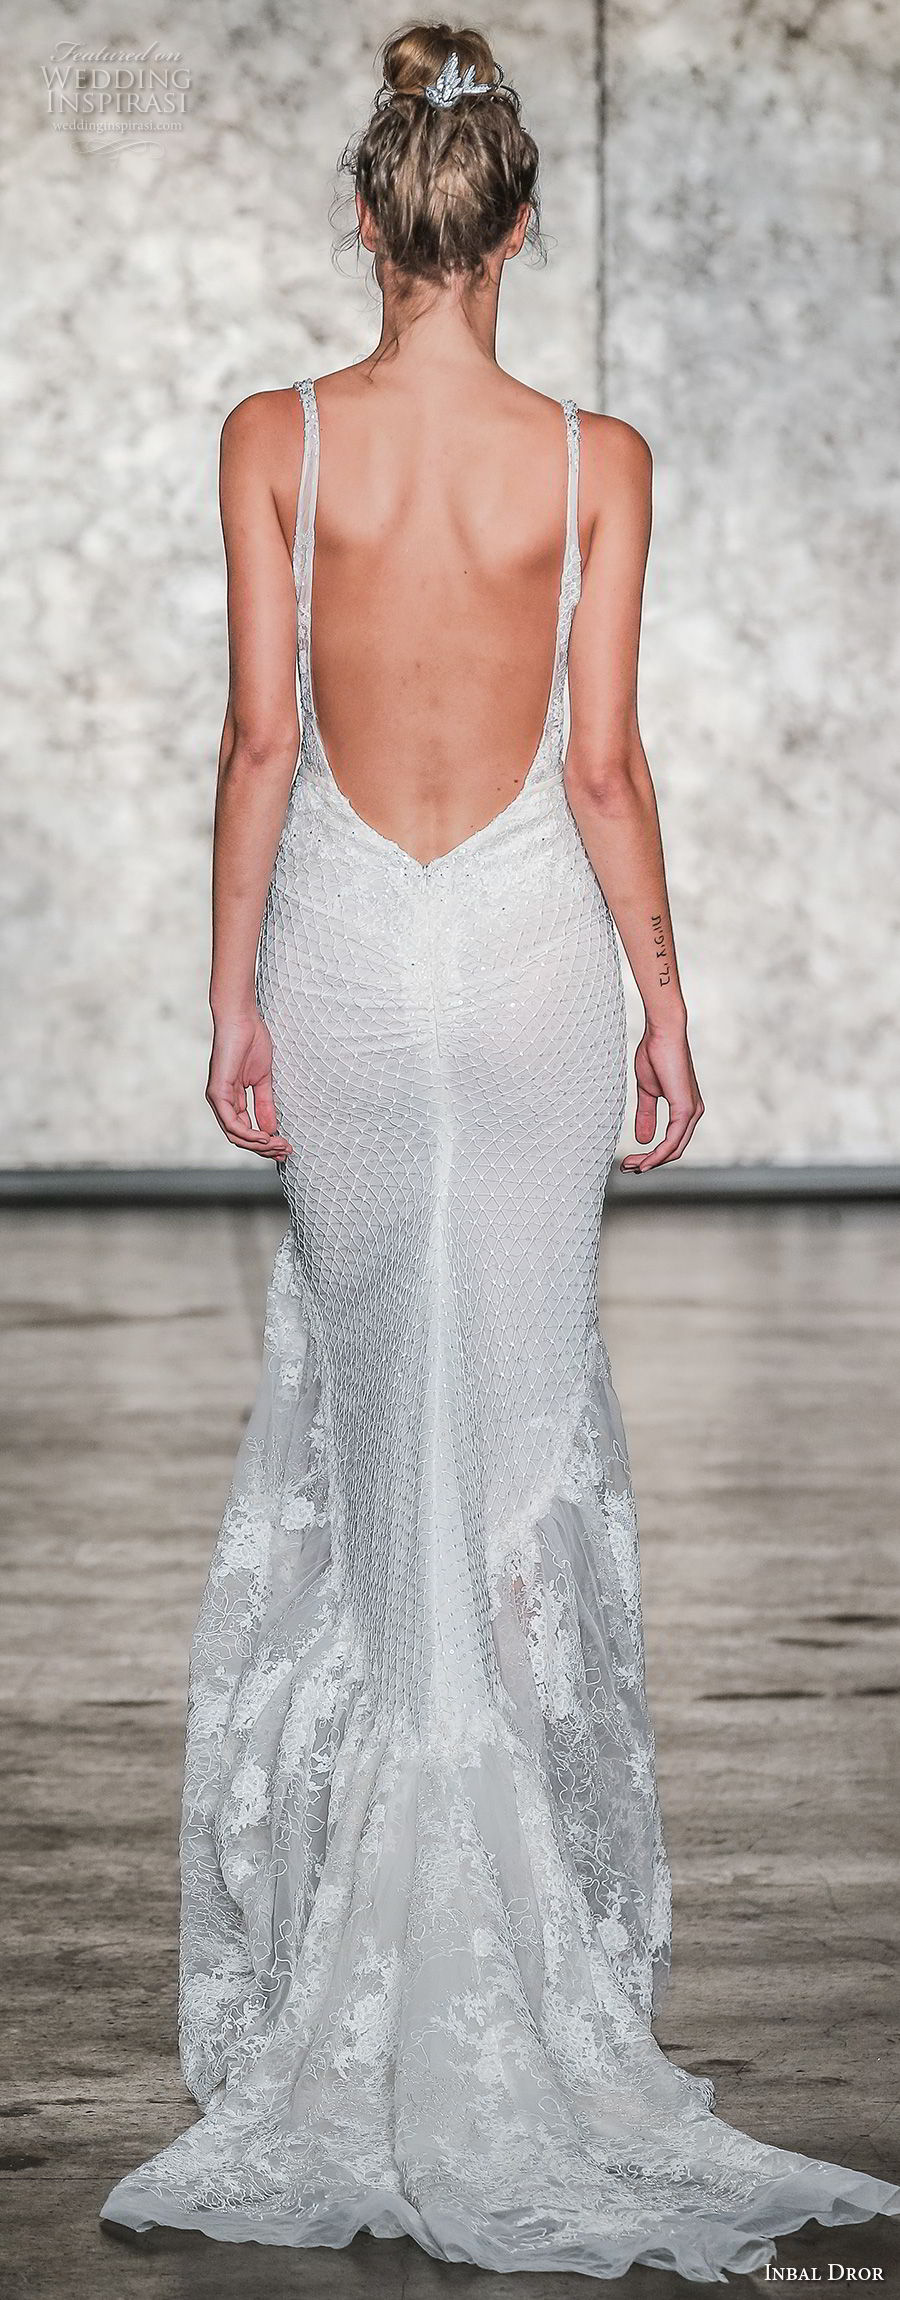 inbal dror fall 2018 bridal sleeveless deep v neck full embellishment elegant fit and flare wedding dress low open back sweep train (17) bv